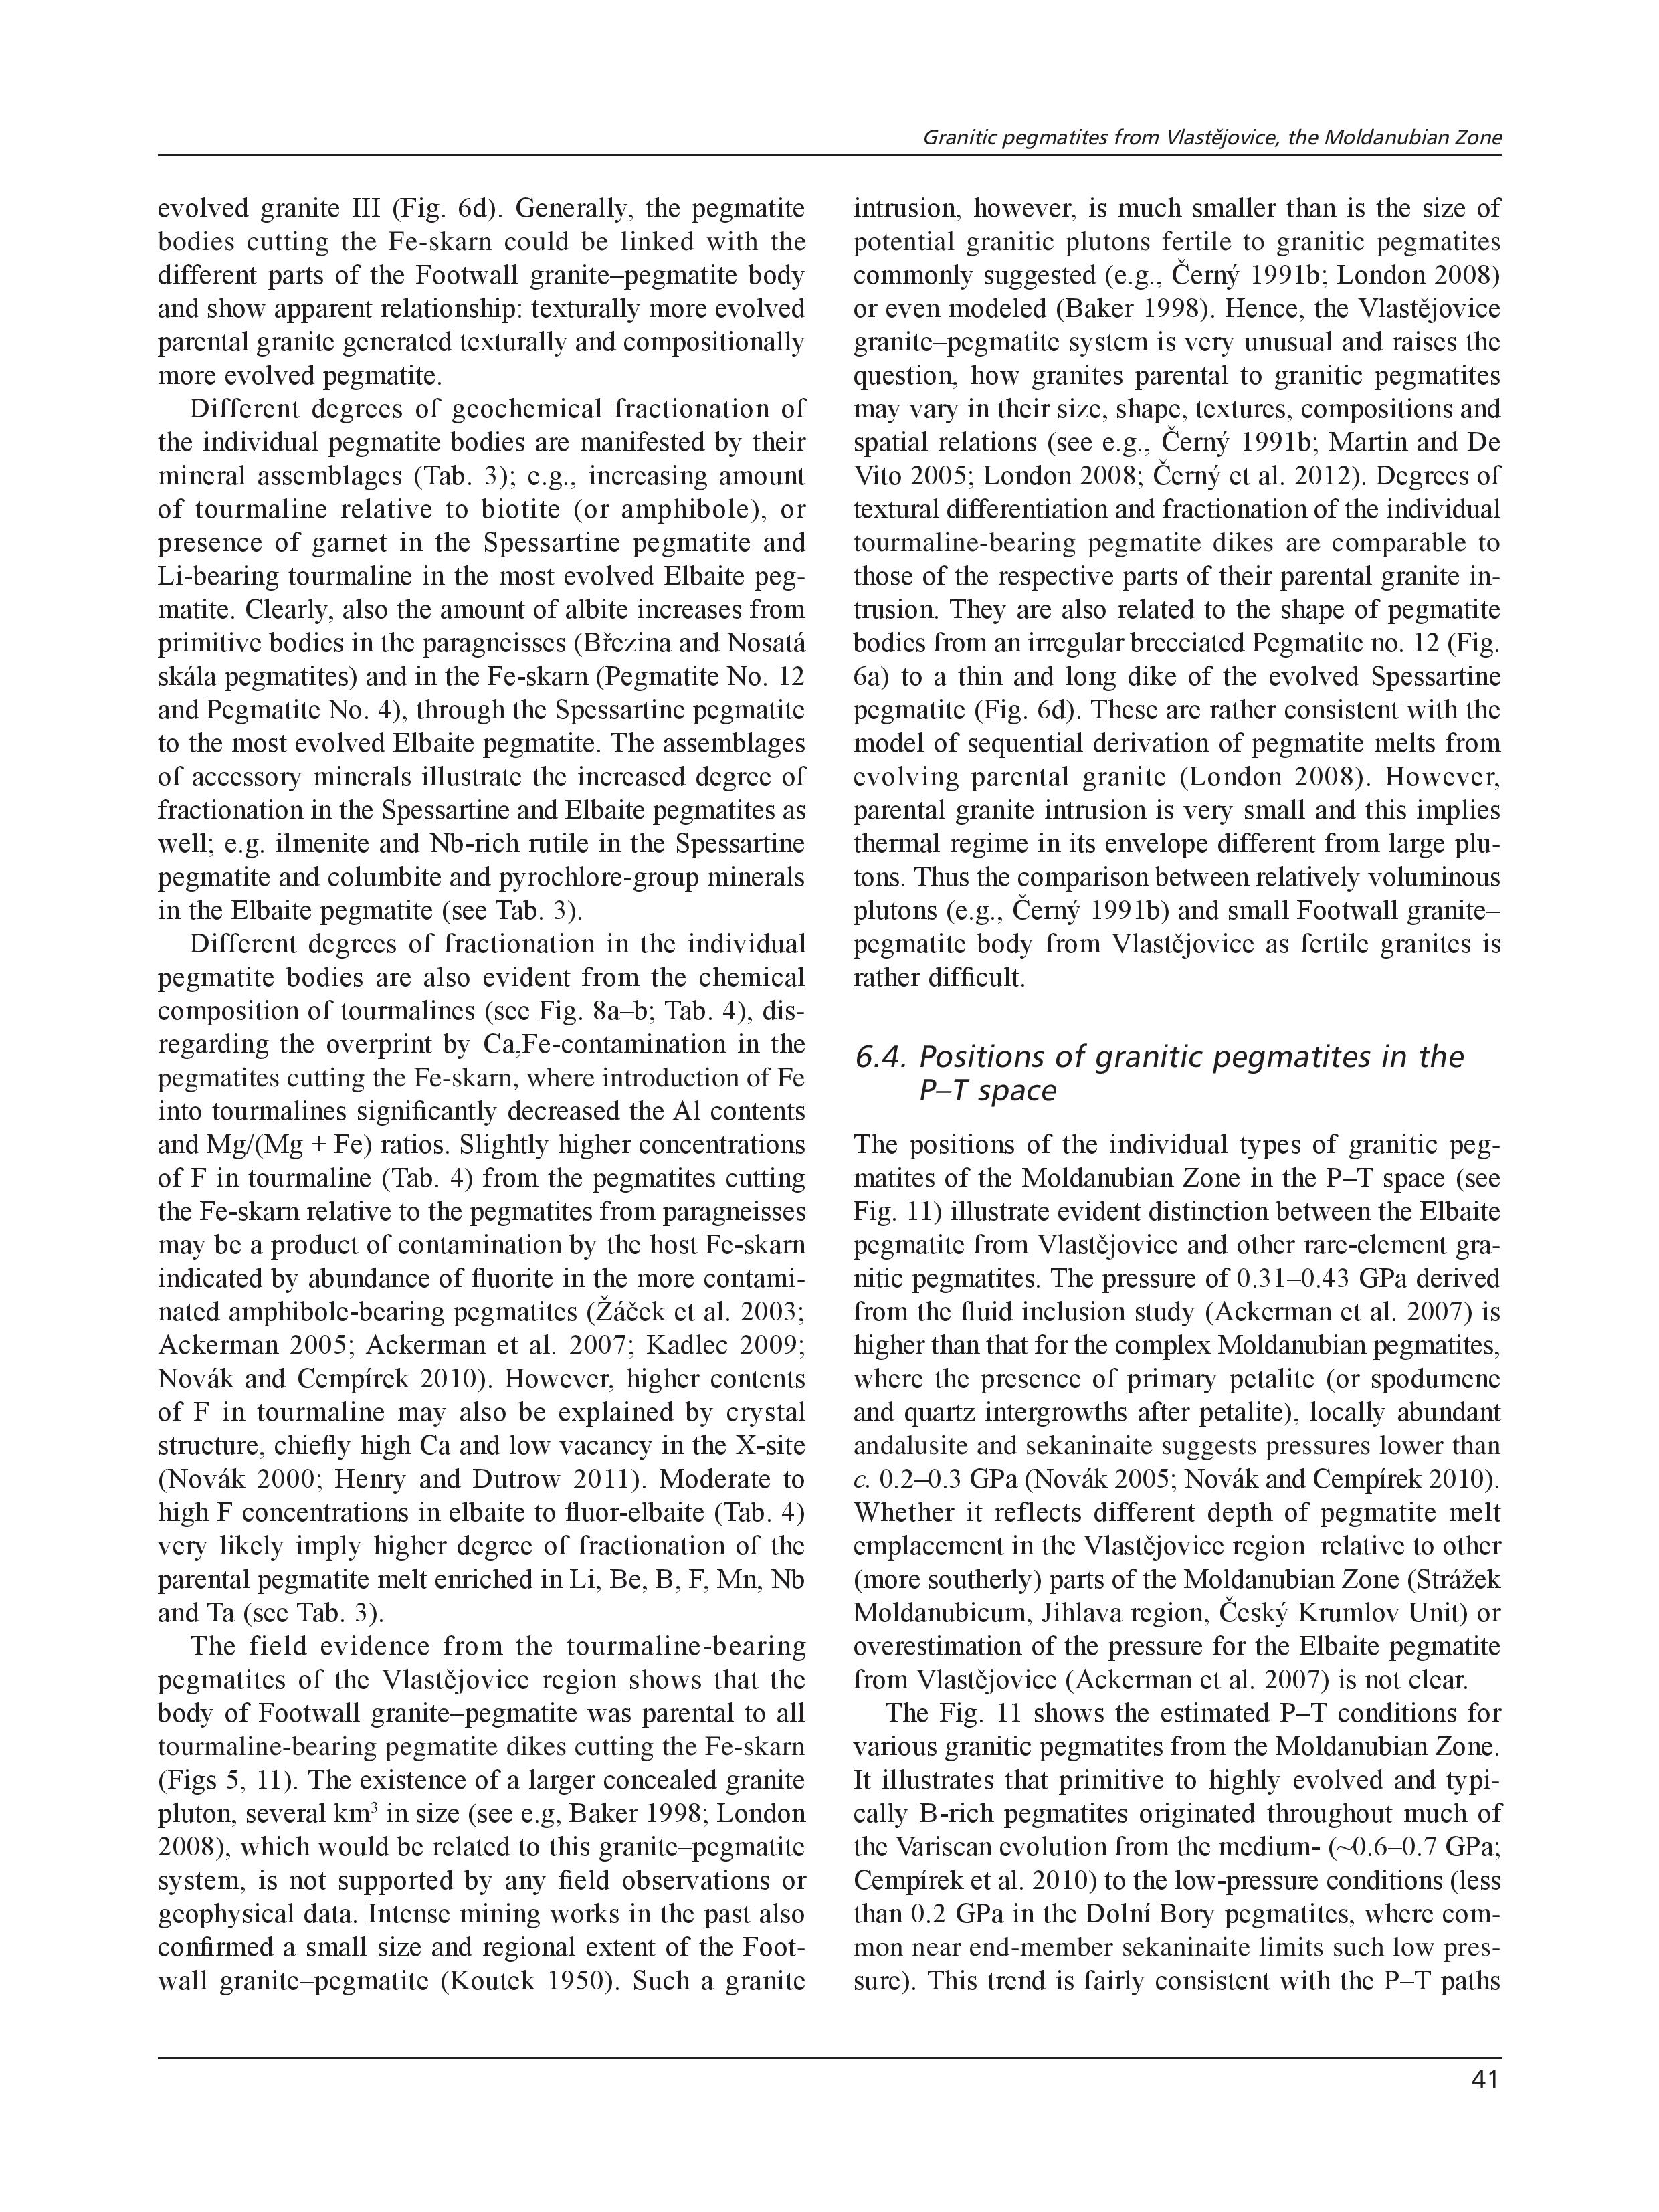 Geological position mineral assemblages and contam page 028